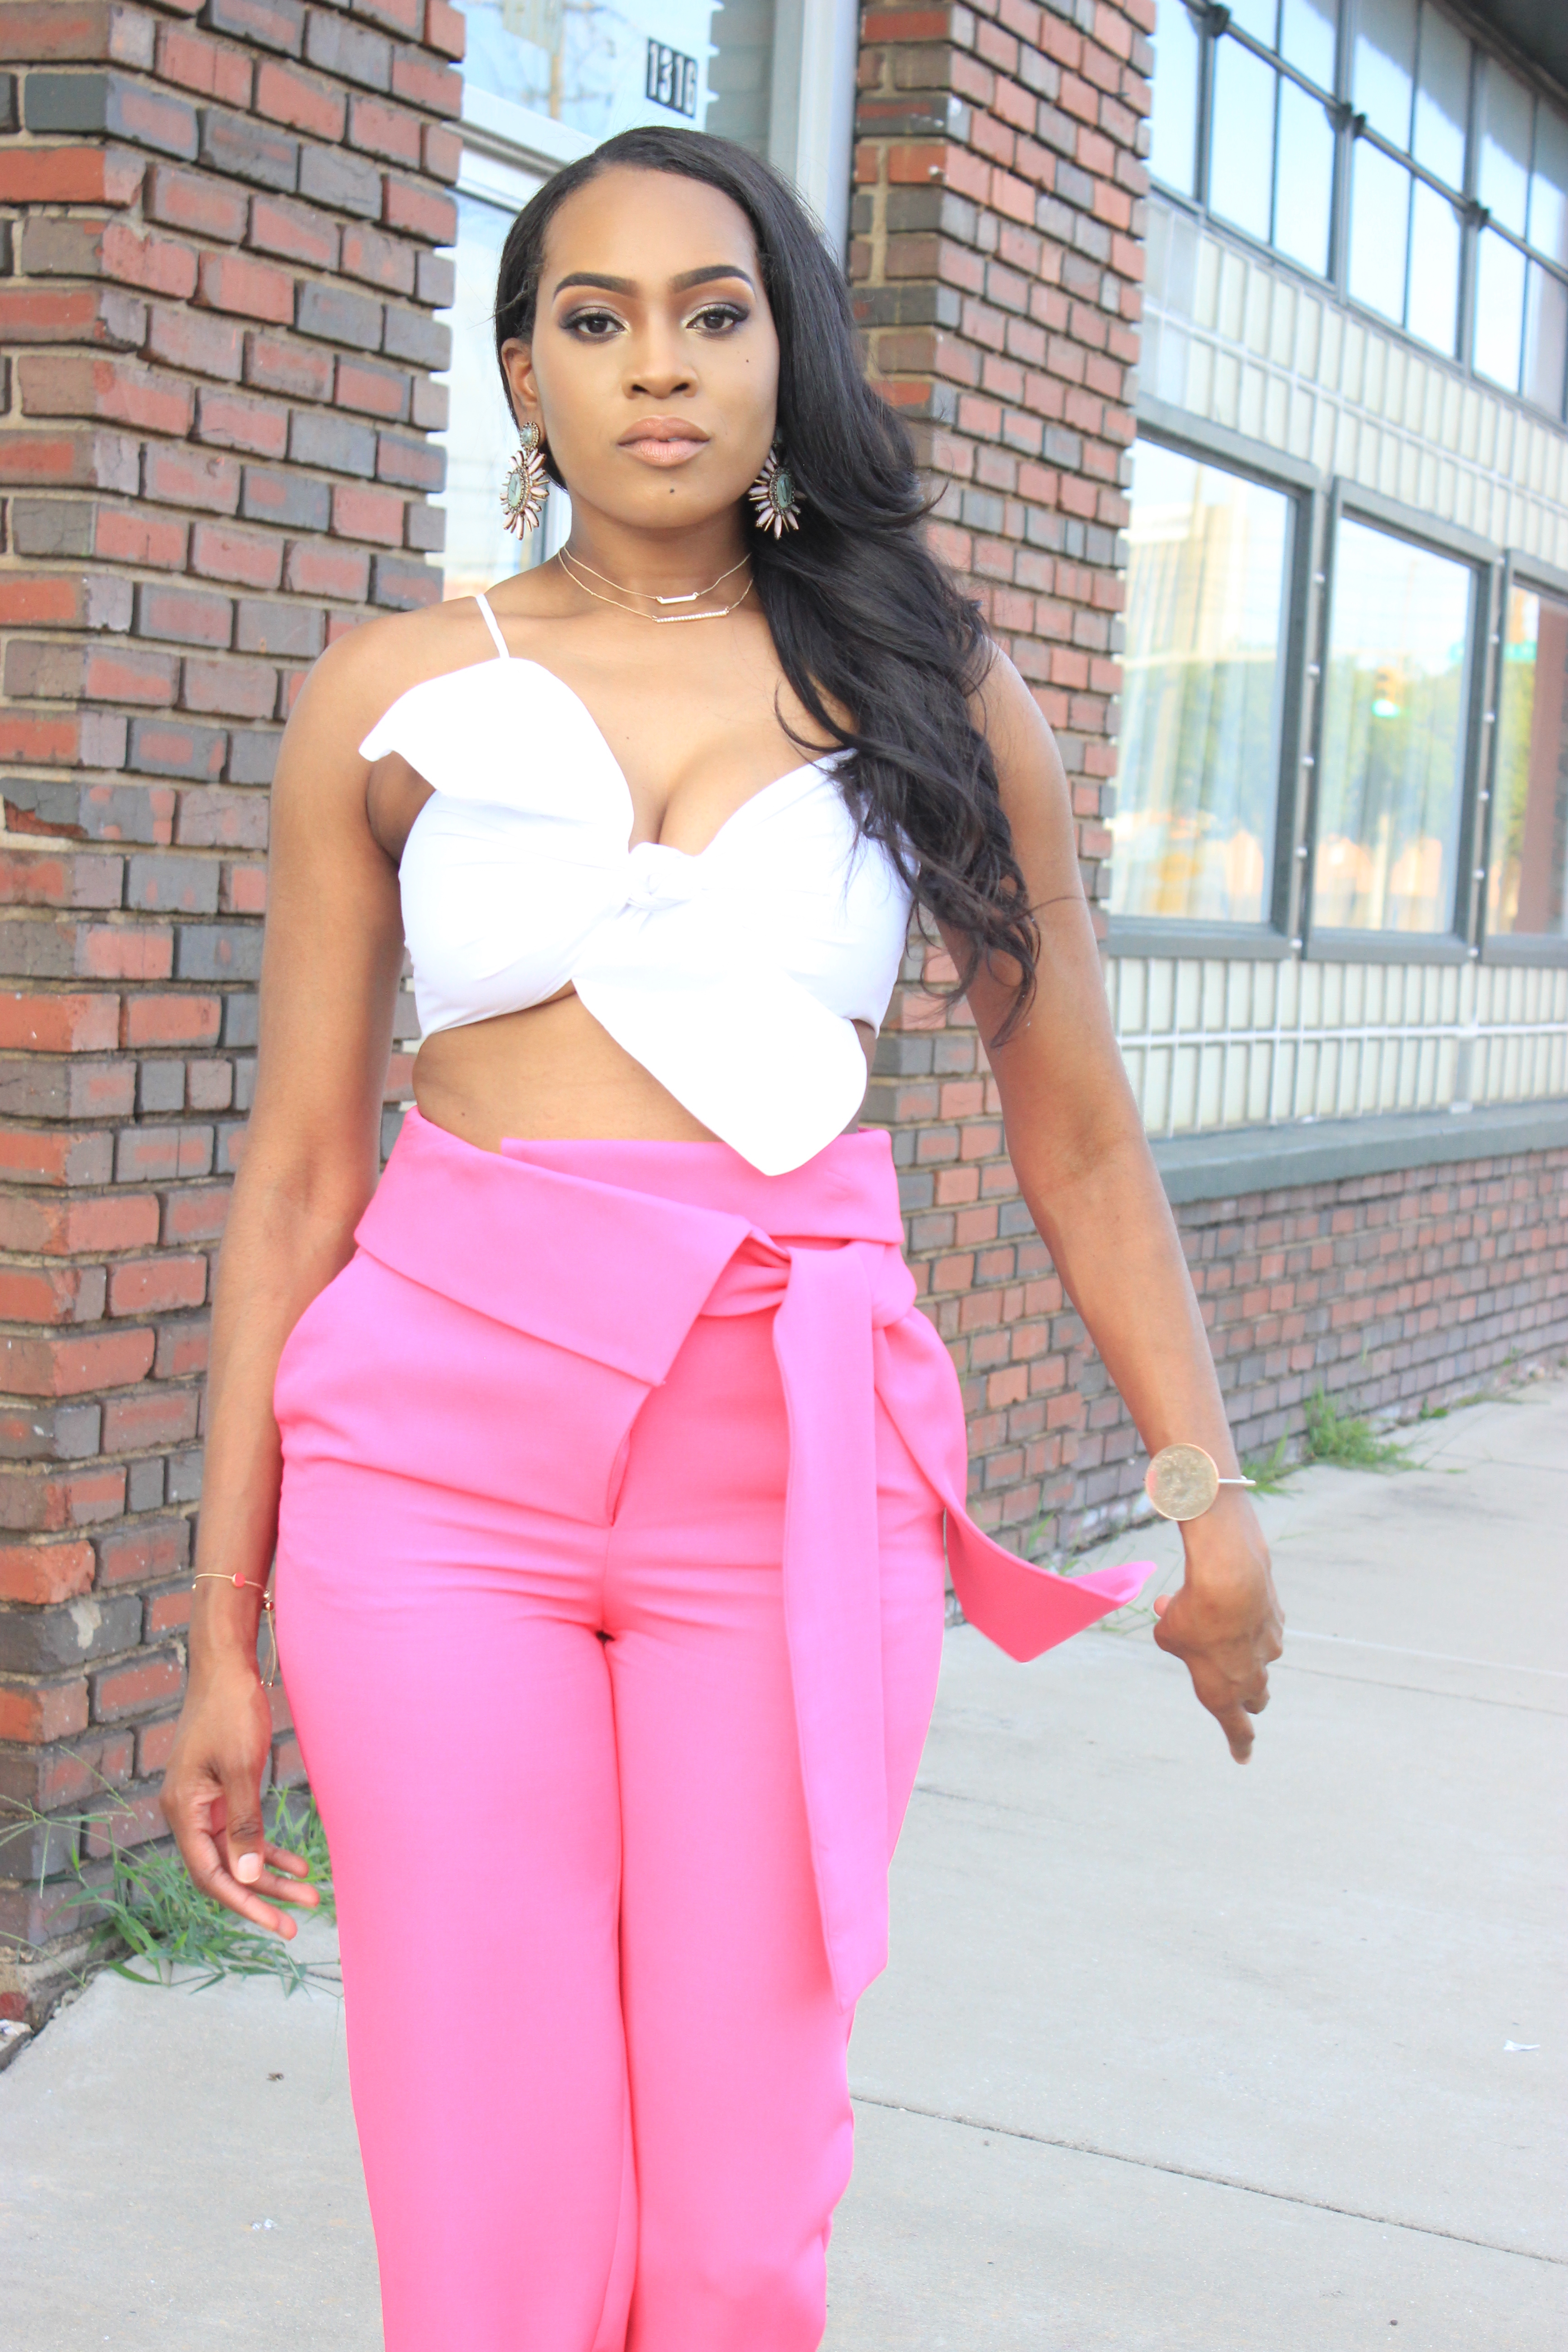 Style files-Hot-pink-asos-pants-with-origami-waist-tie-detail-truffle-collection-barely-there-heel-sandal-rose-gold-forever-21-contemporary-white-cropt-top-perfect-summer-pants-top-birmingham-bloggers-oohlalablog-13